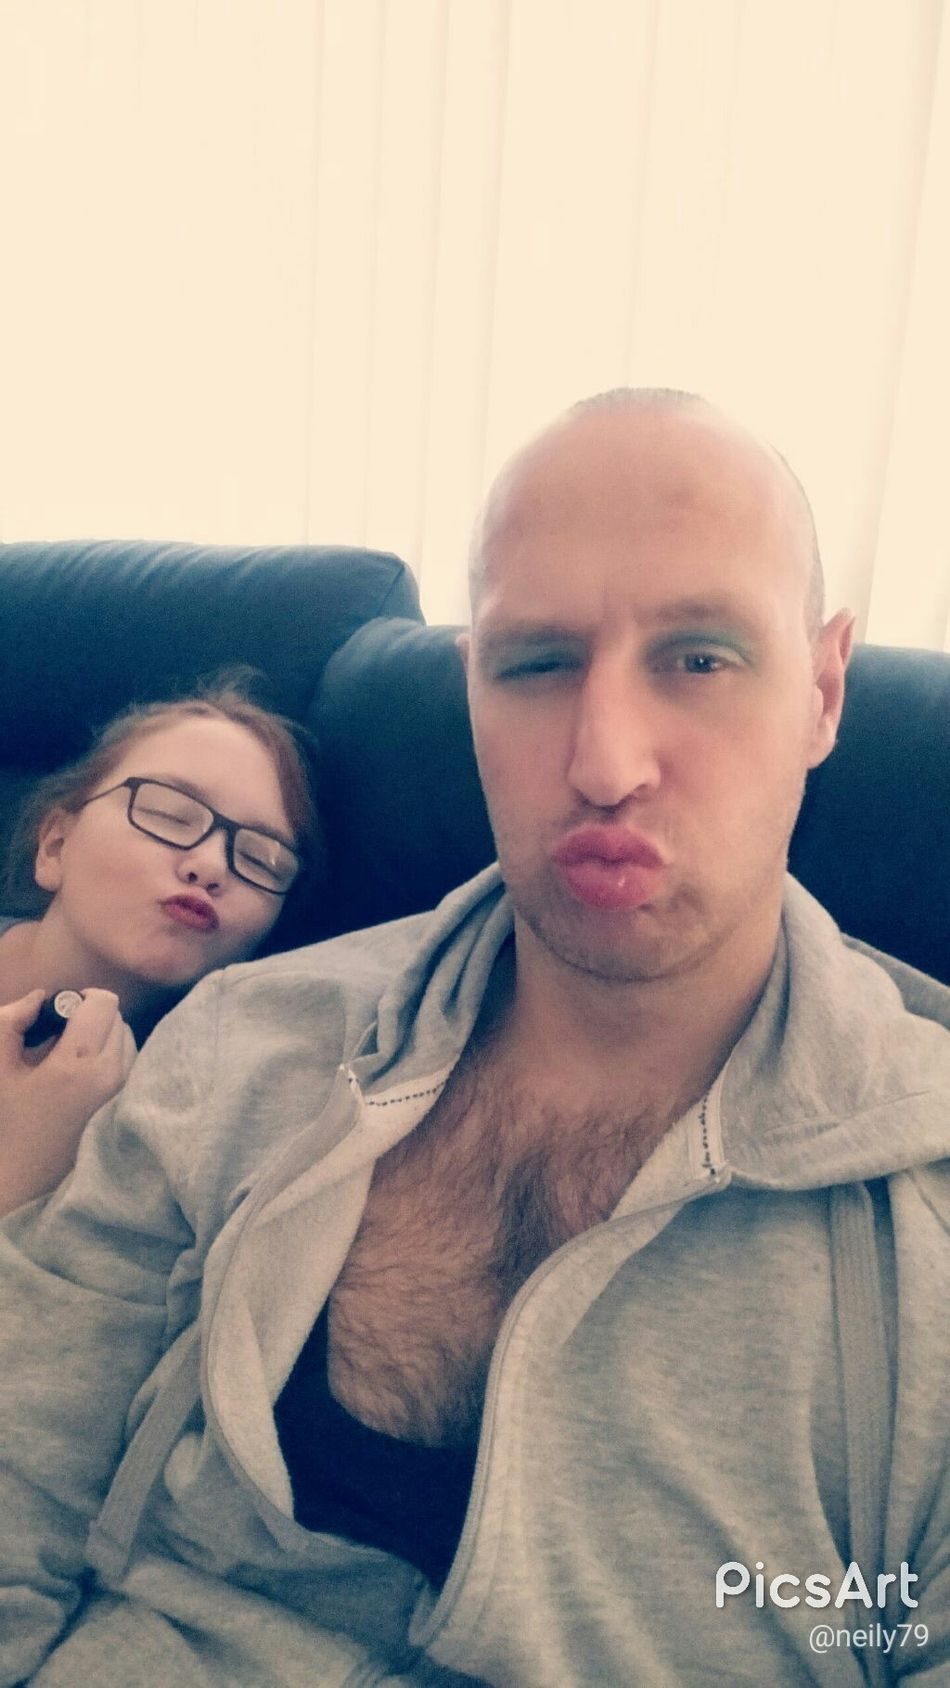 Letting my daughter practice her makeup on me 😀 Two People Adult Men Indoors  People Selfıe Reflection Life Outdoors GlassesNature Photography Hiking Selfie ✌ Daughter Father And Daughter Bald Headshot Body & Fitness Food Me Adult Landscape Real People Sky Walking